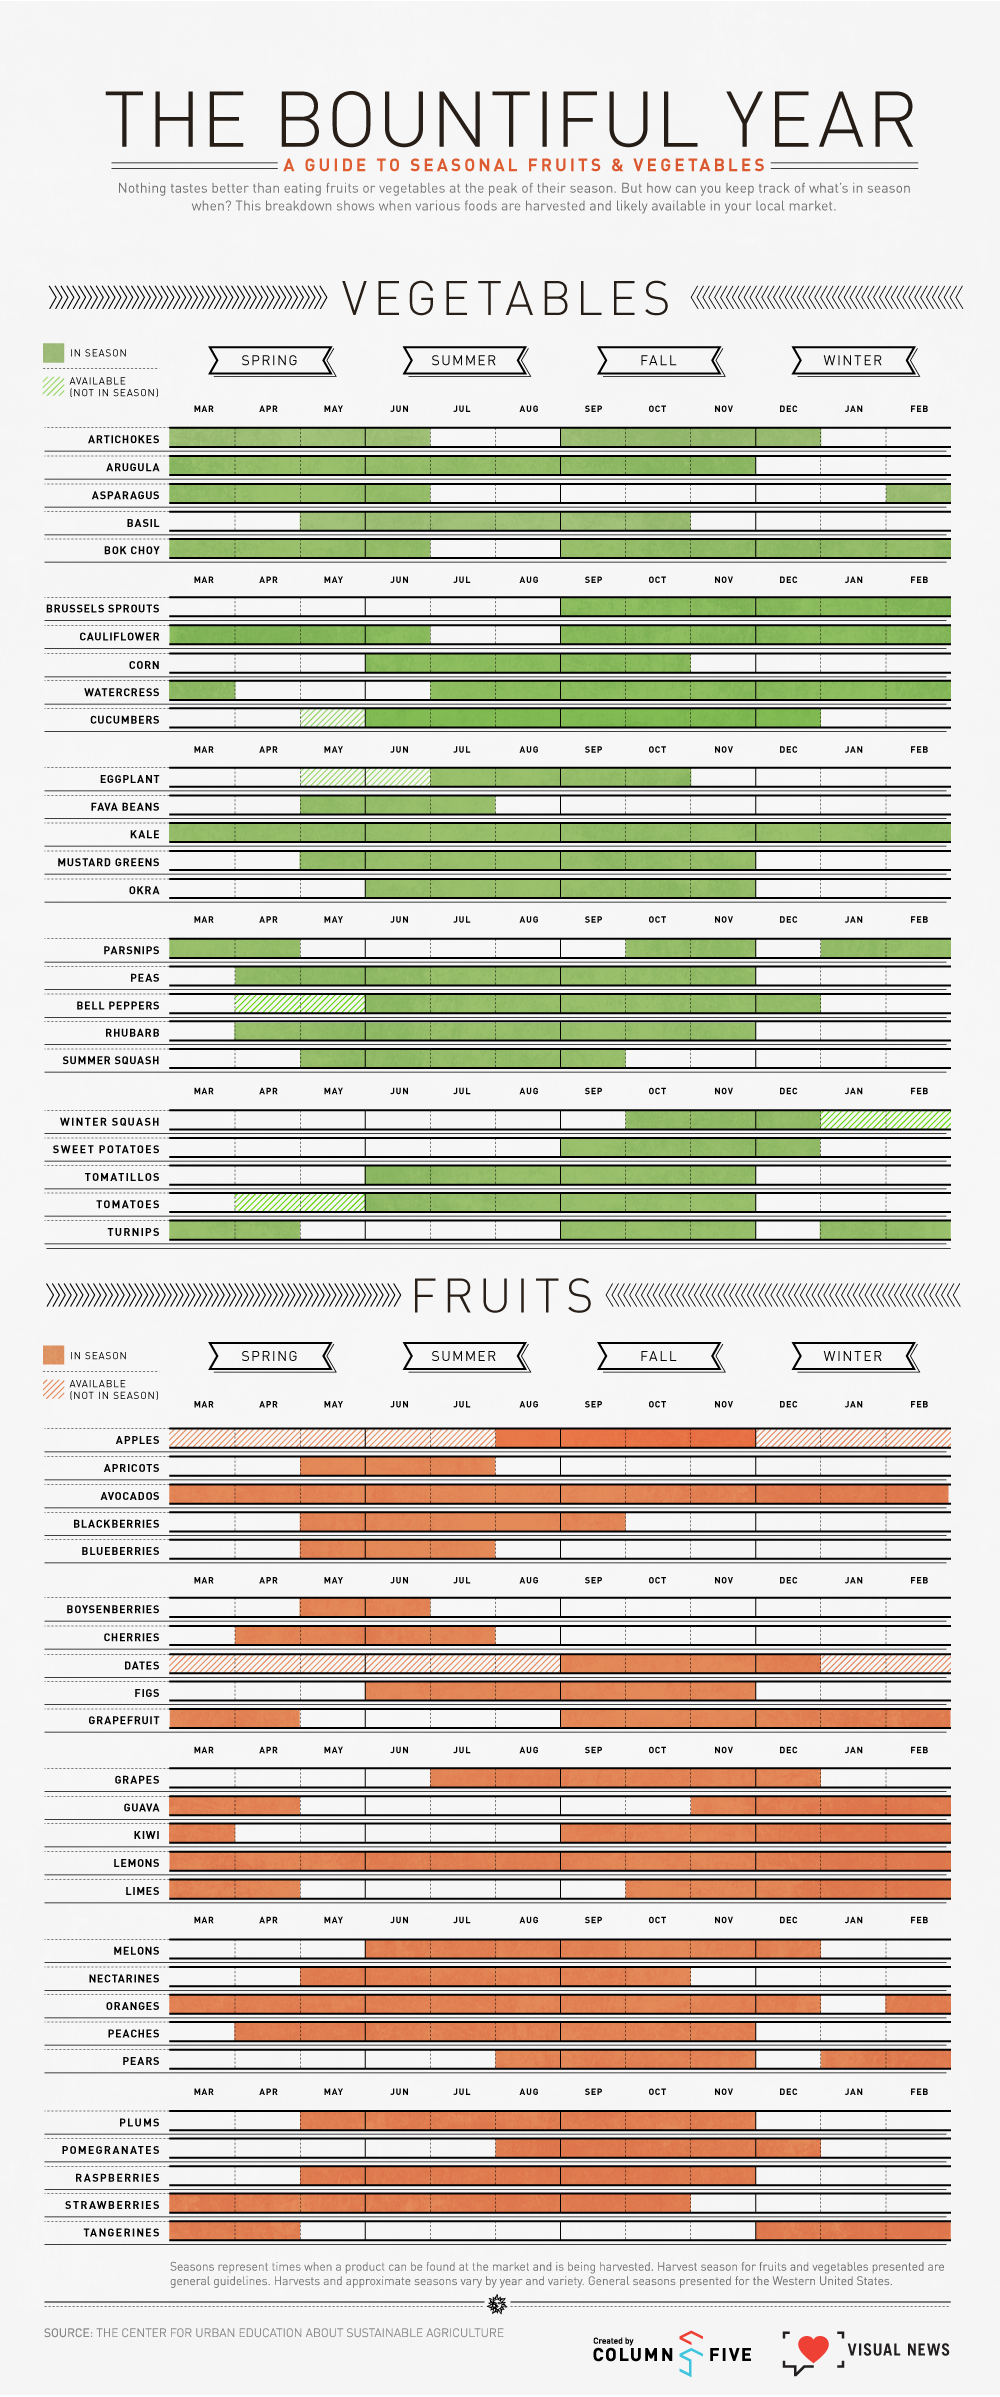 The Bountiful Year: A Guide To Seasonal Fruits & Vegetable